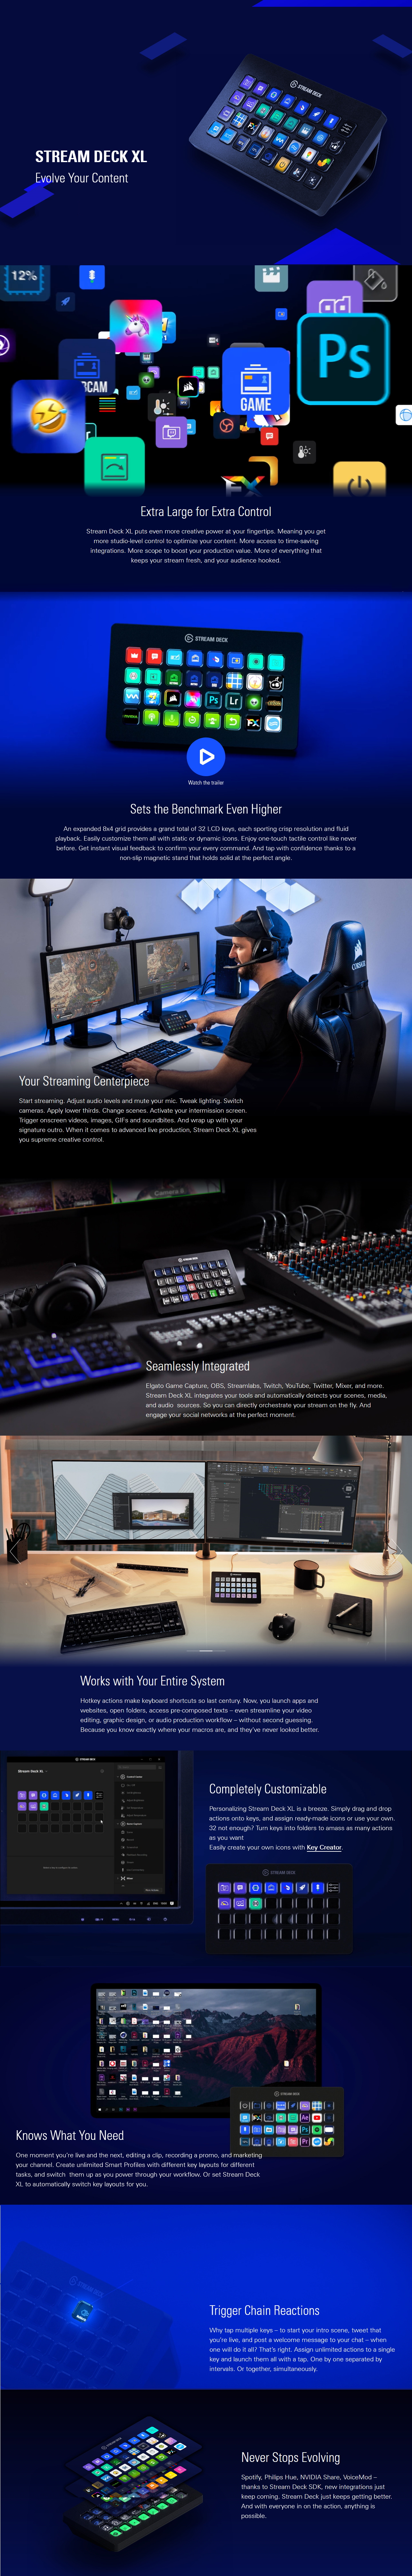 A large marketing image providing additional information about the product Elgato Stream Deck XL - Additional alt info not provided